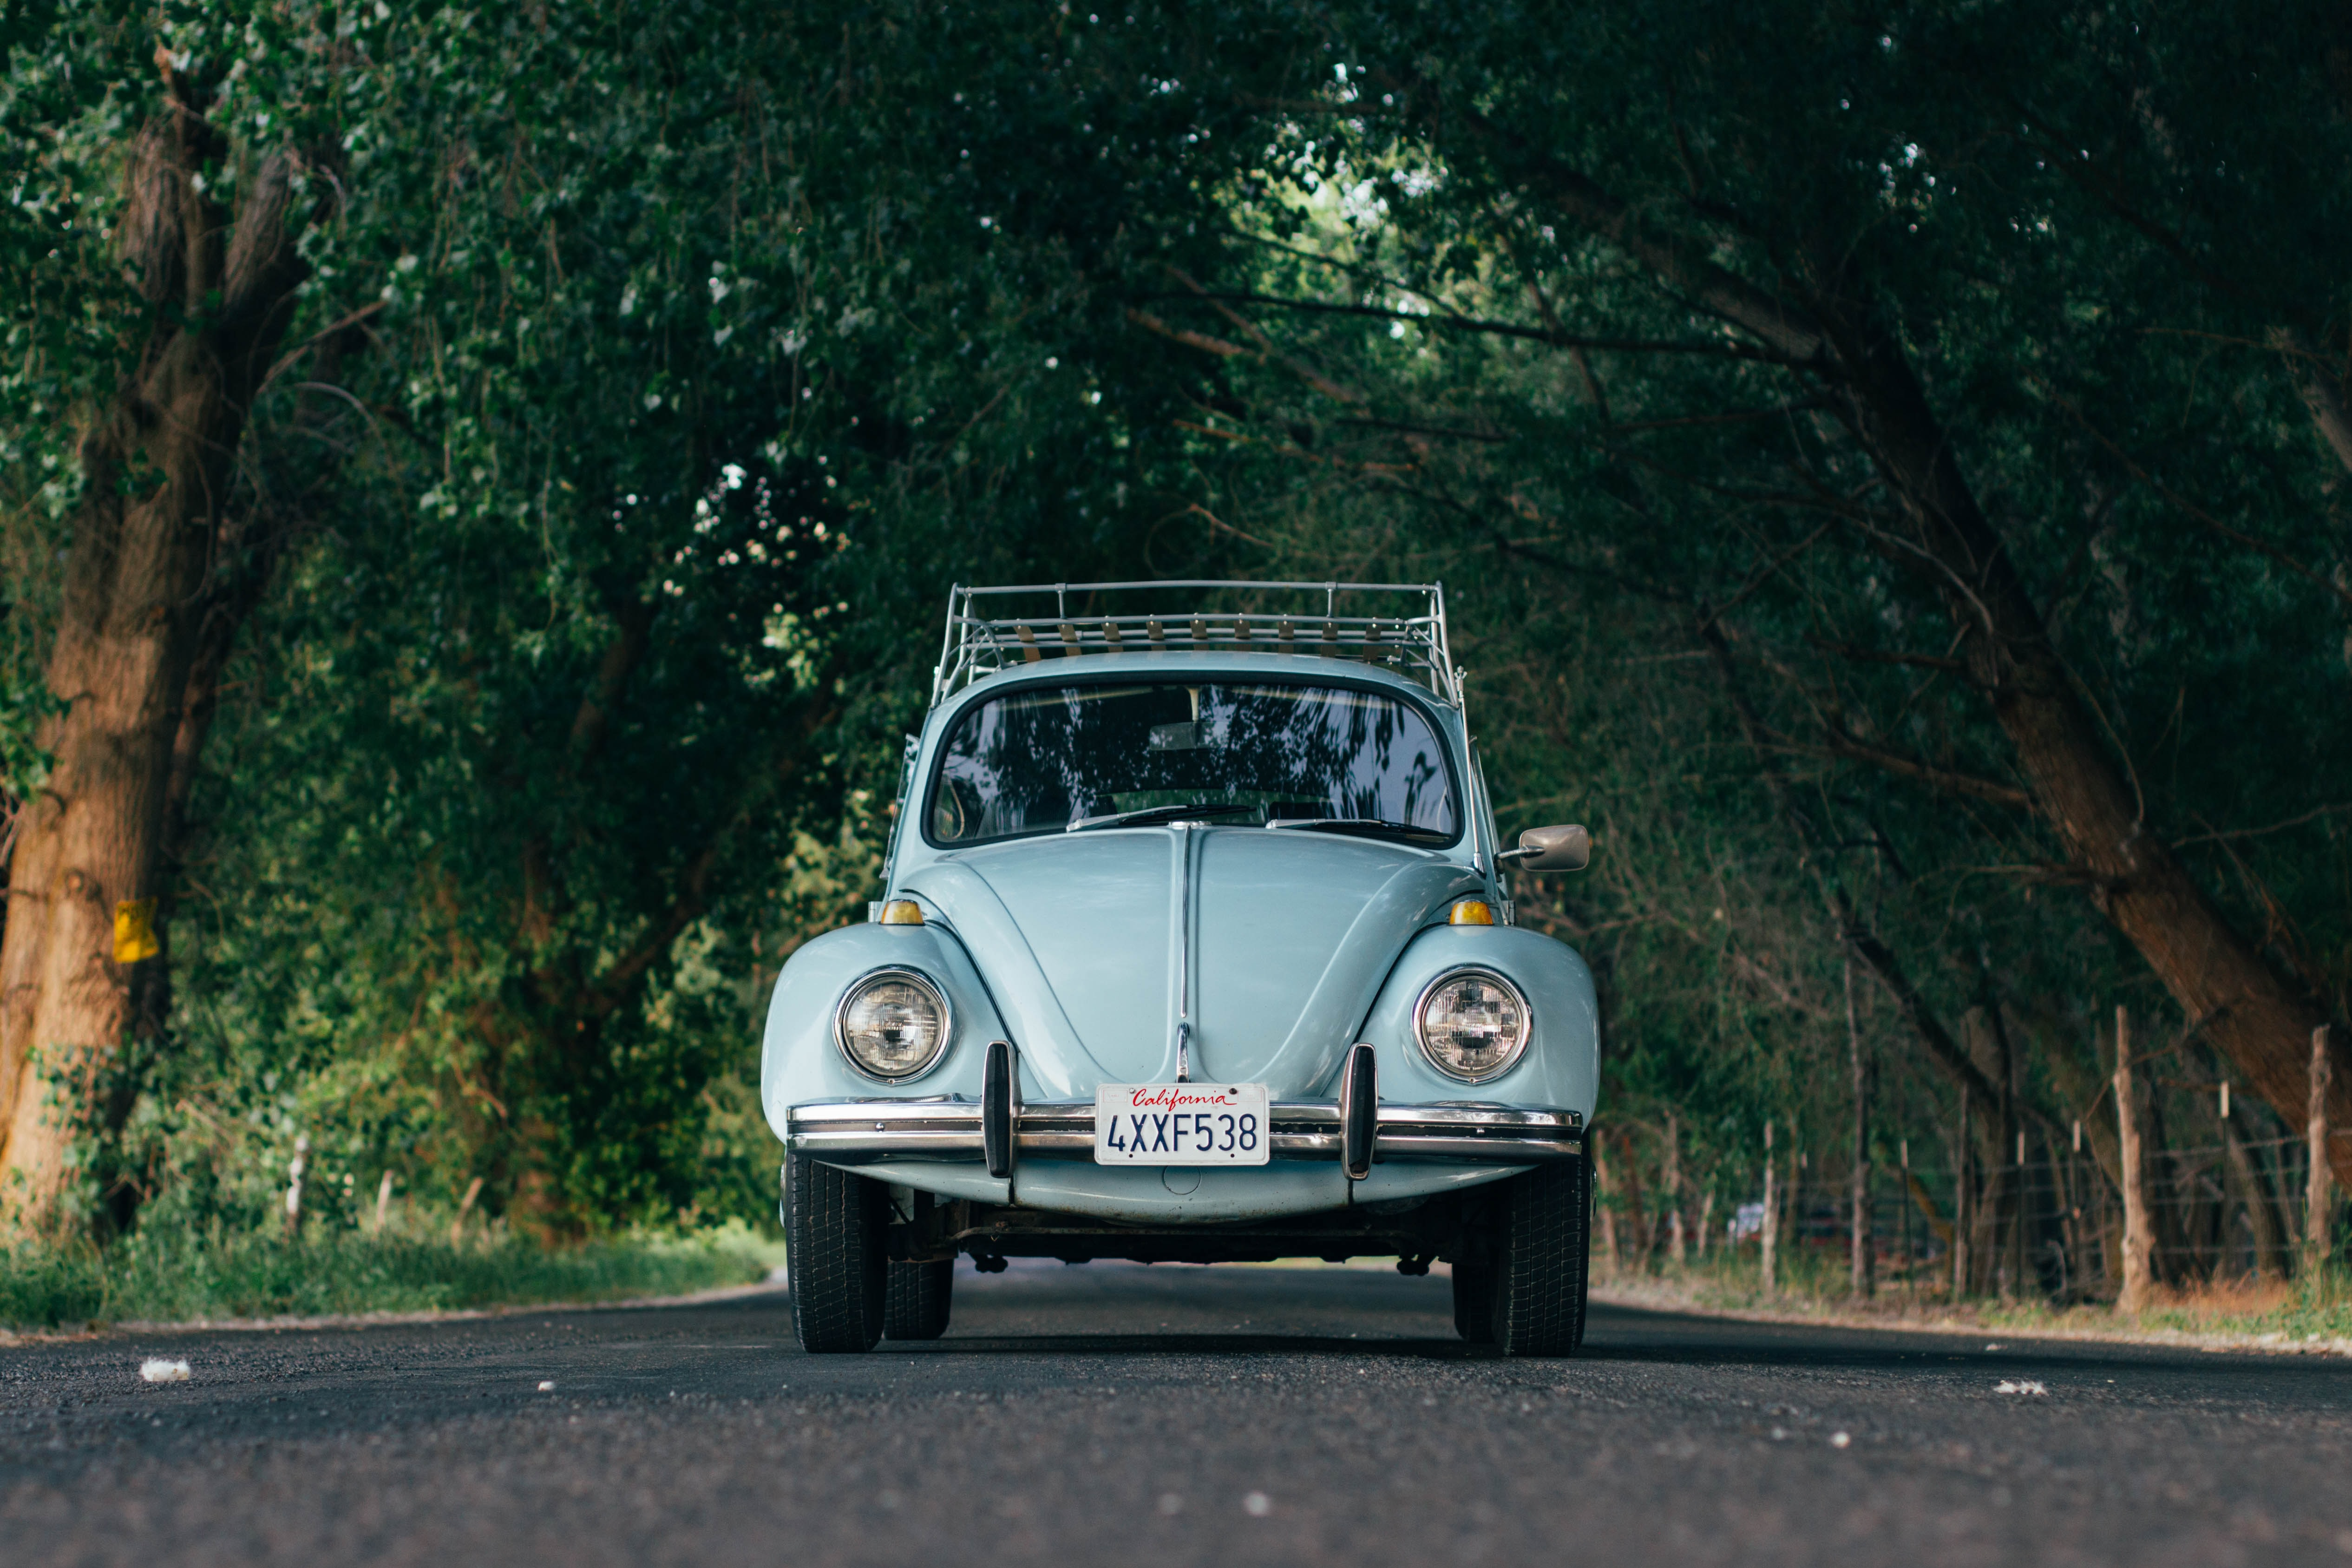 Vintage mint colored Volkswagen Beetle driving down tree lined country road